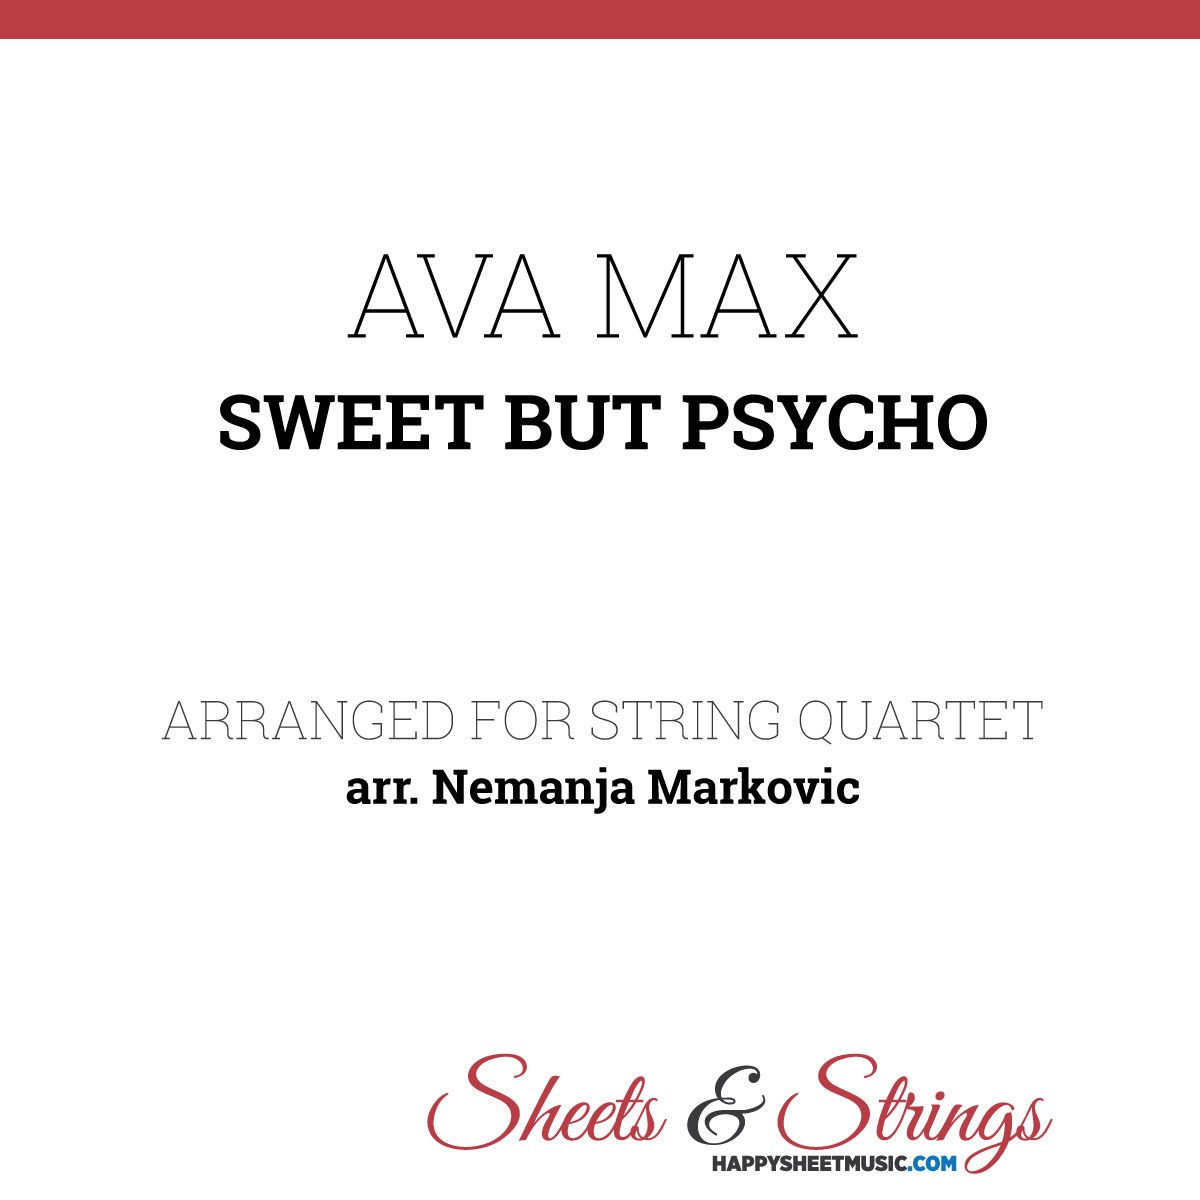 Ava Max - Sweet but Psycho - Sheet Music for String Quartet - Music Arrangement for String Quartet